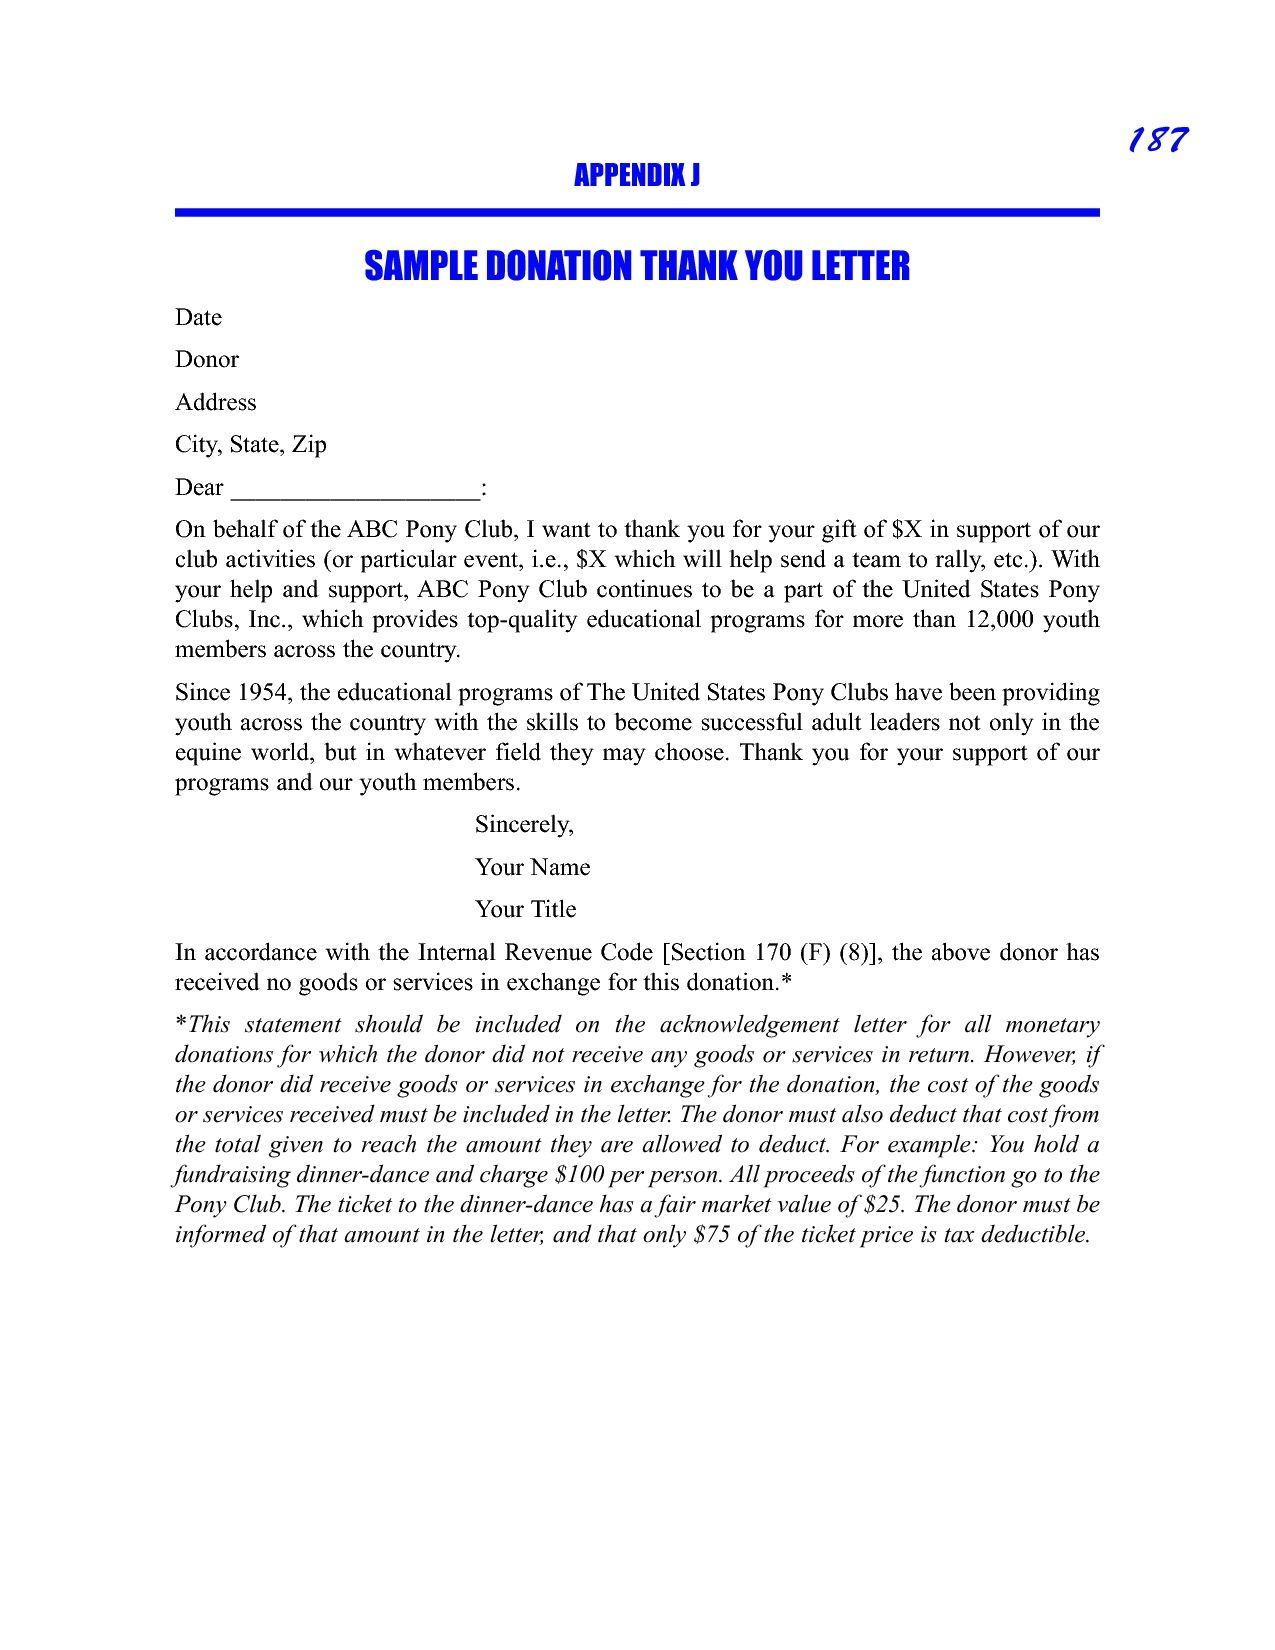 Donation thank you letter best business template for charitable donation thank you letter best business template for charitable donations aljukfo Image collections